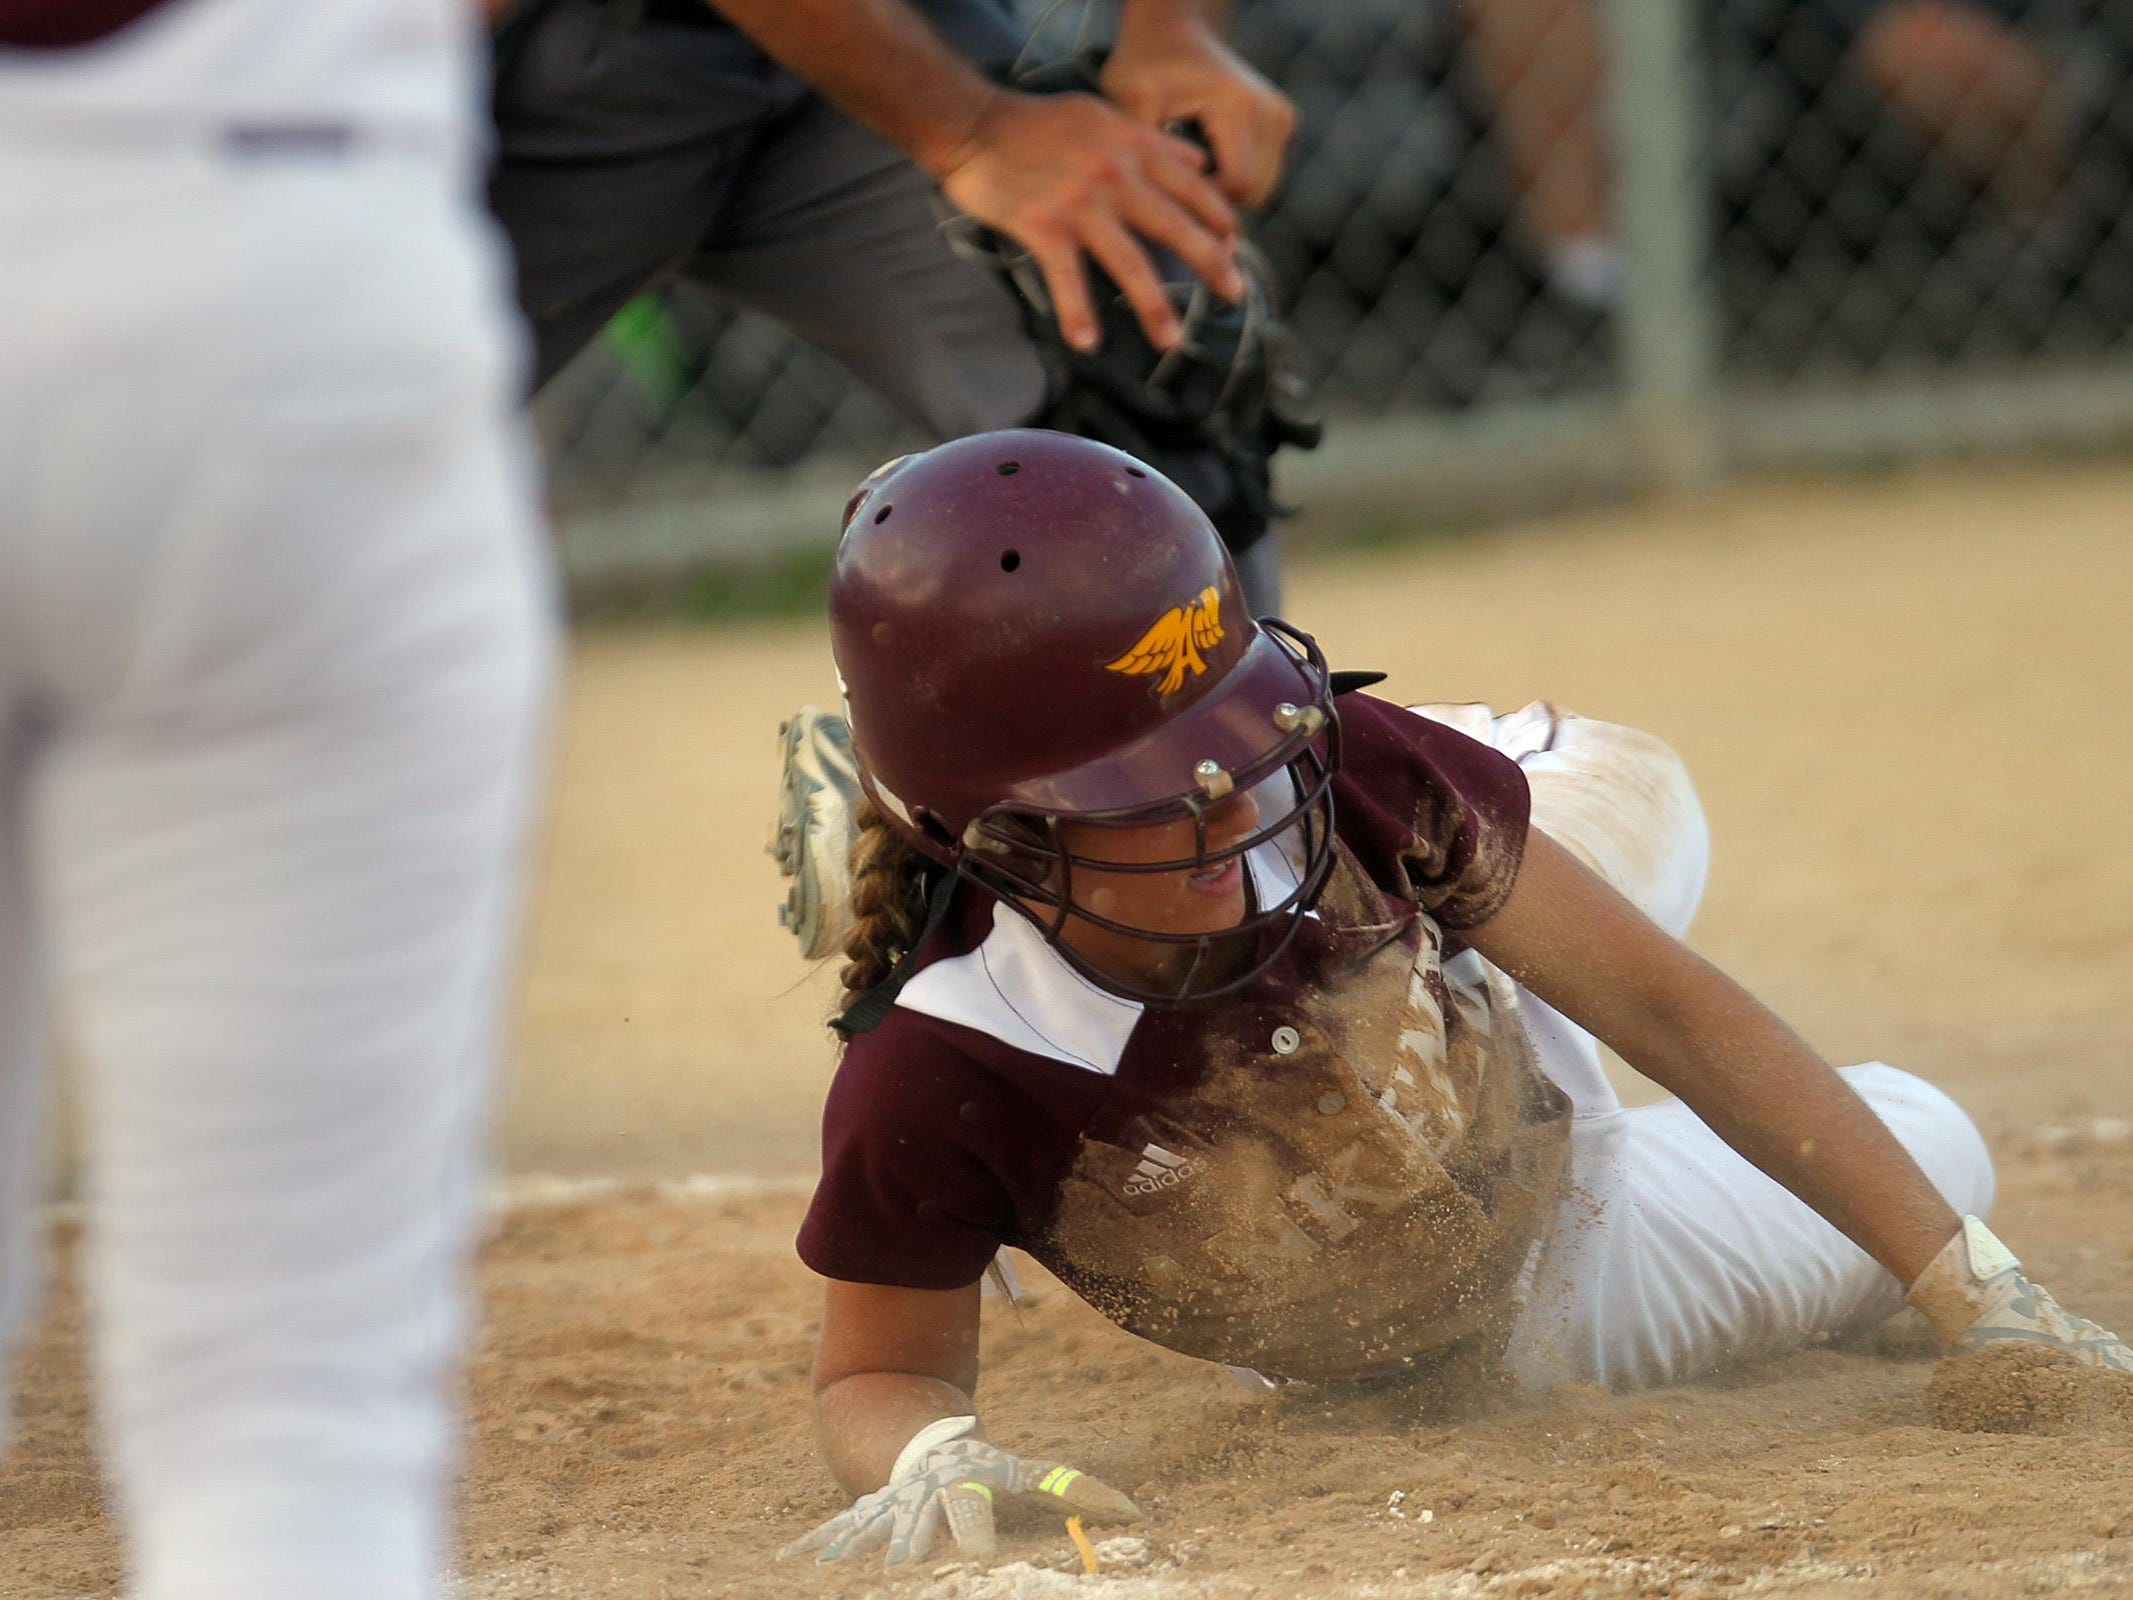 Ankeny's Gabi Bingham safely slides home during the Hawkettes' Class 5A regional championship game at West High on Tuesday, July 14, 2015. Ankeny won, 3-1, to head to state. David Scrivner / Iowa City Press-Citizen